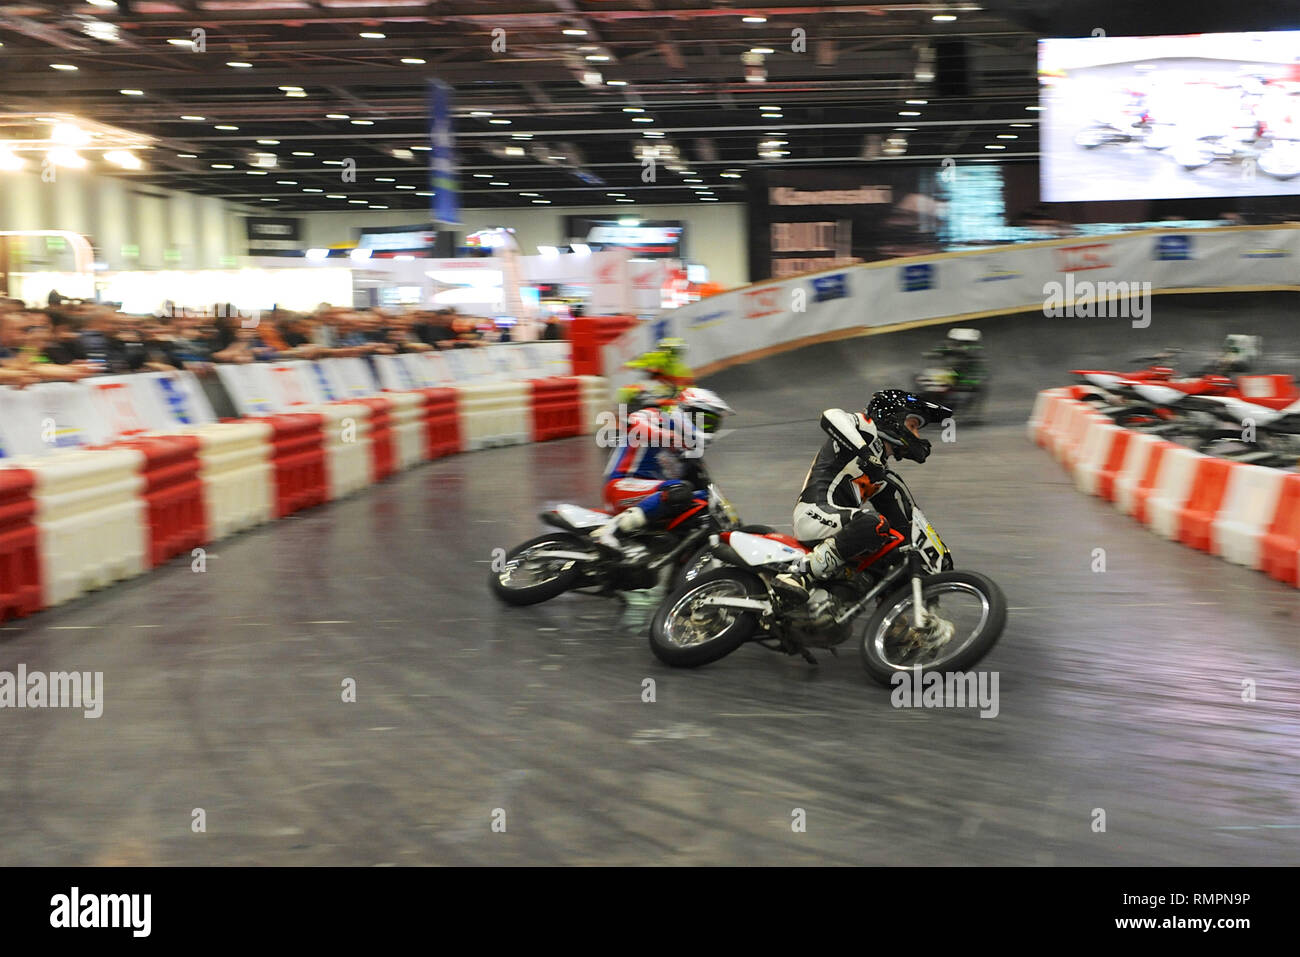 Tim Neave (professional motorcycle racer) leading into a